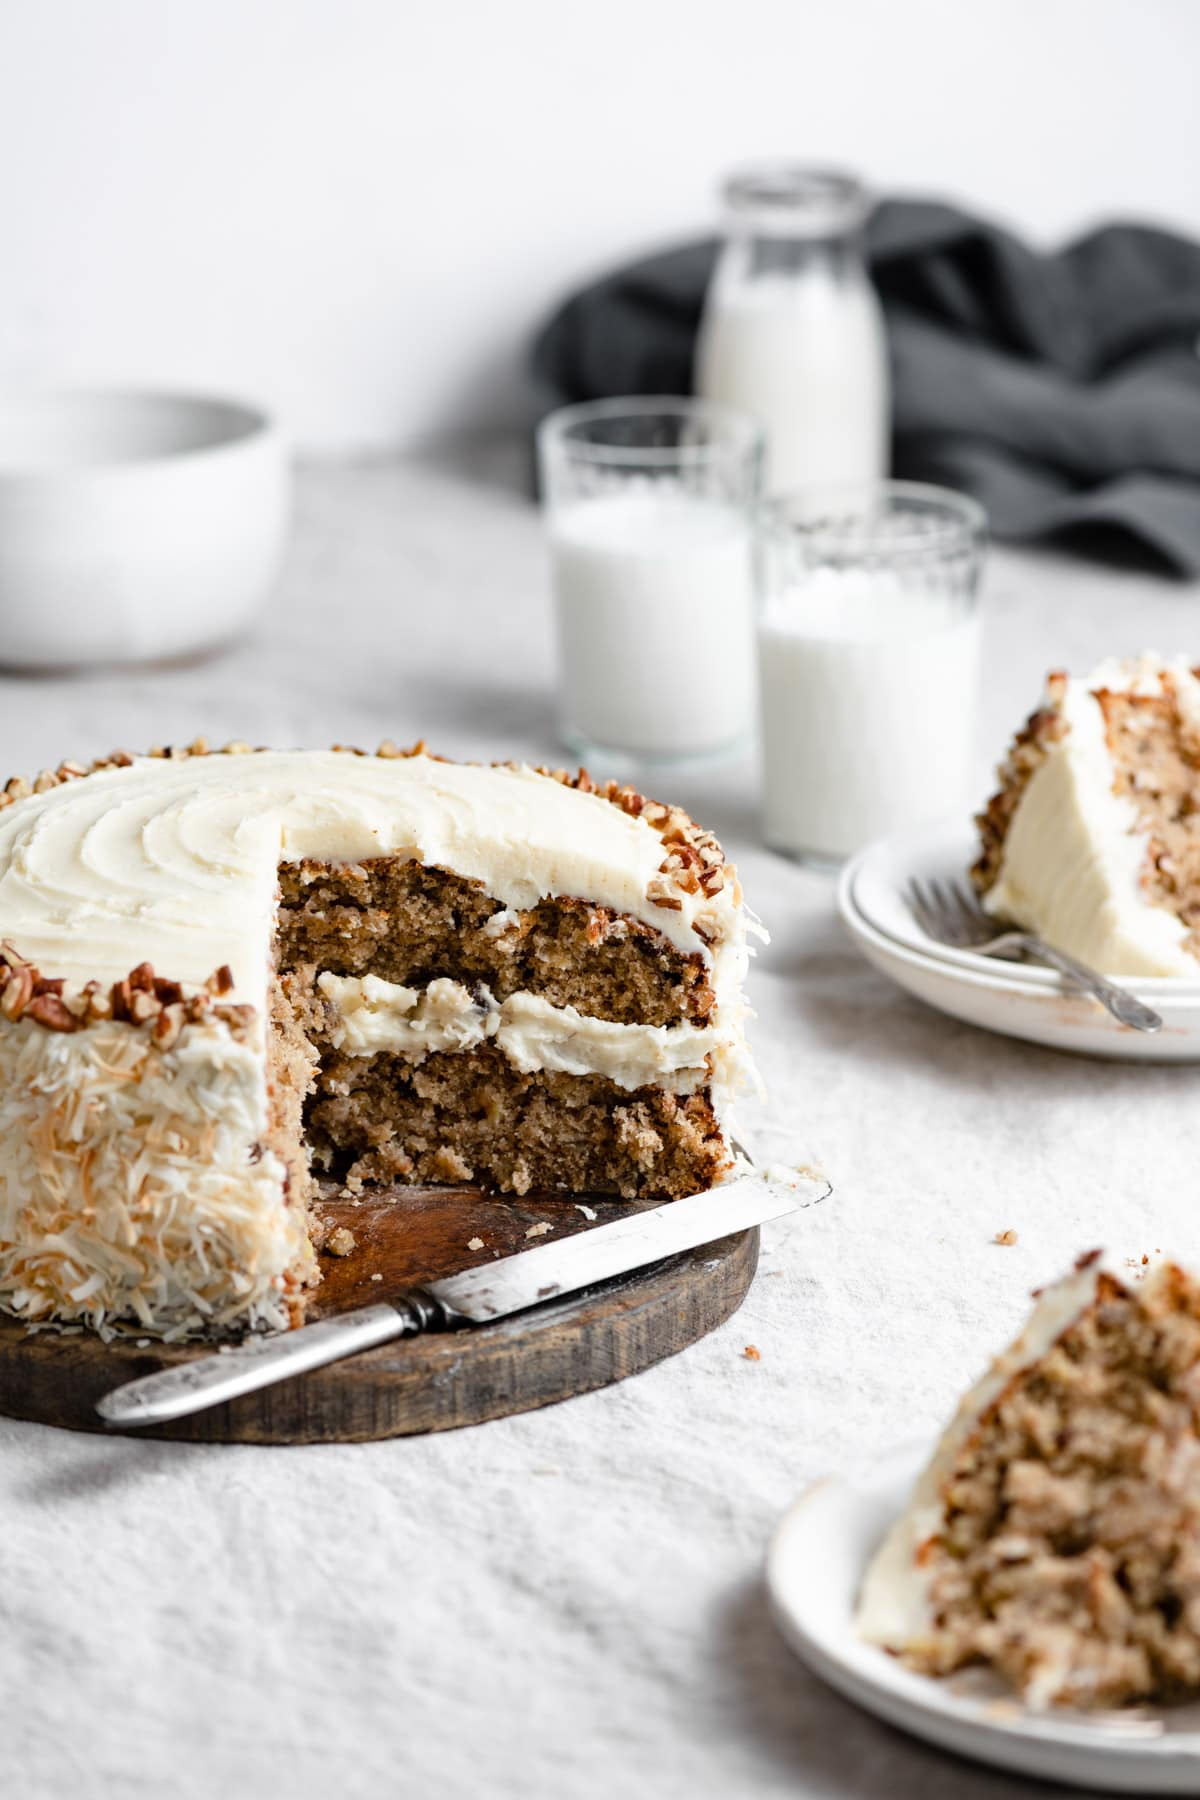 Hummingbird cake shown with a quarter of the cake removed, cake is sitting on a wooden platter. Slices of cake are shown of the the right side.